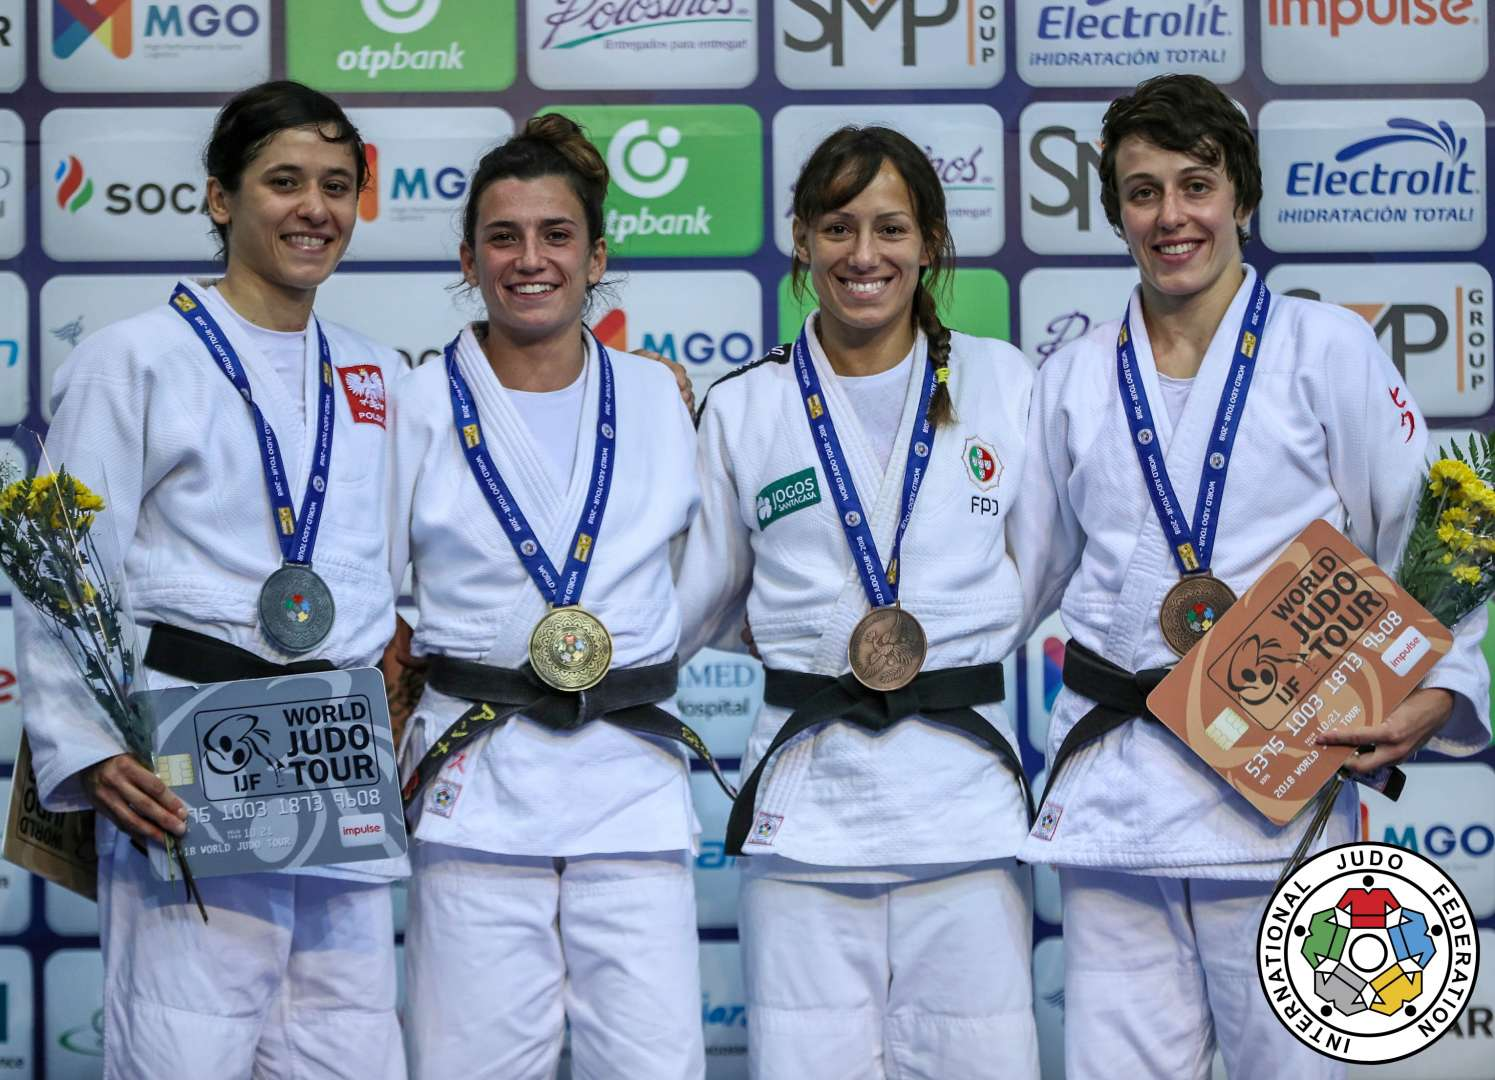 20181012_ijf_cancun_podium_52